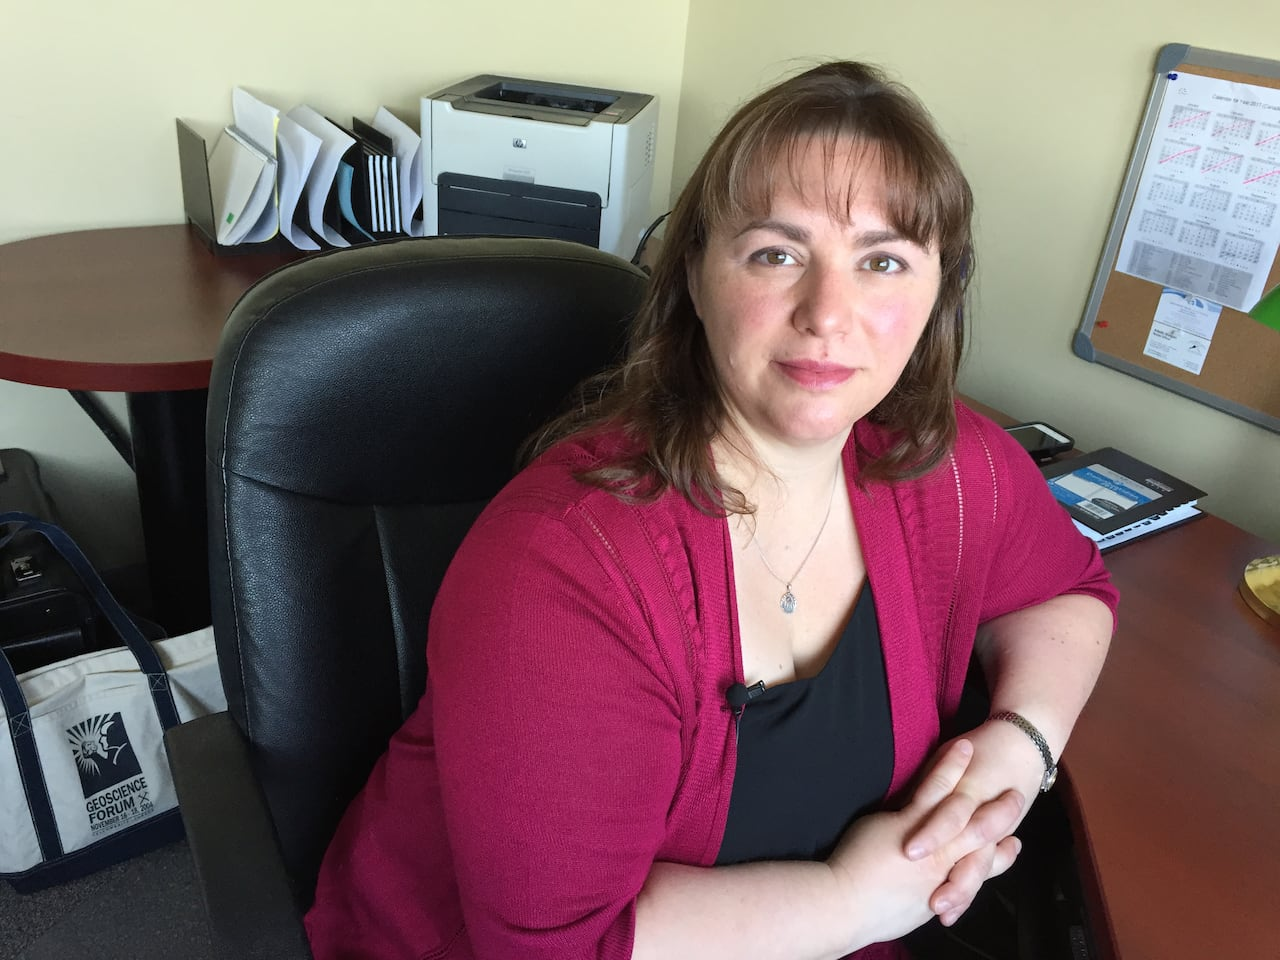 Yellowknife renter frustrated by landlord's slow response to problem